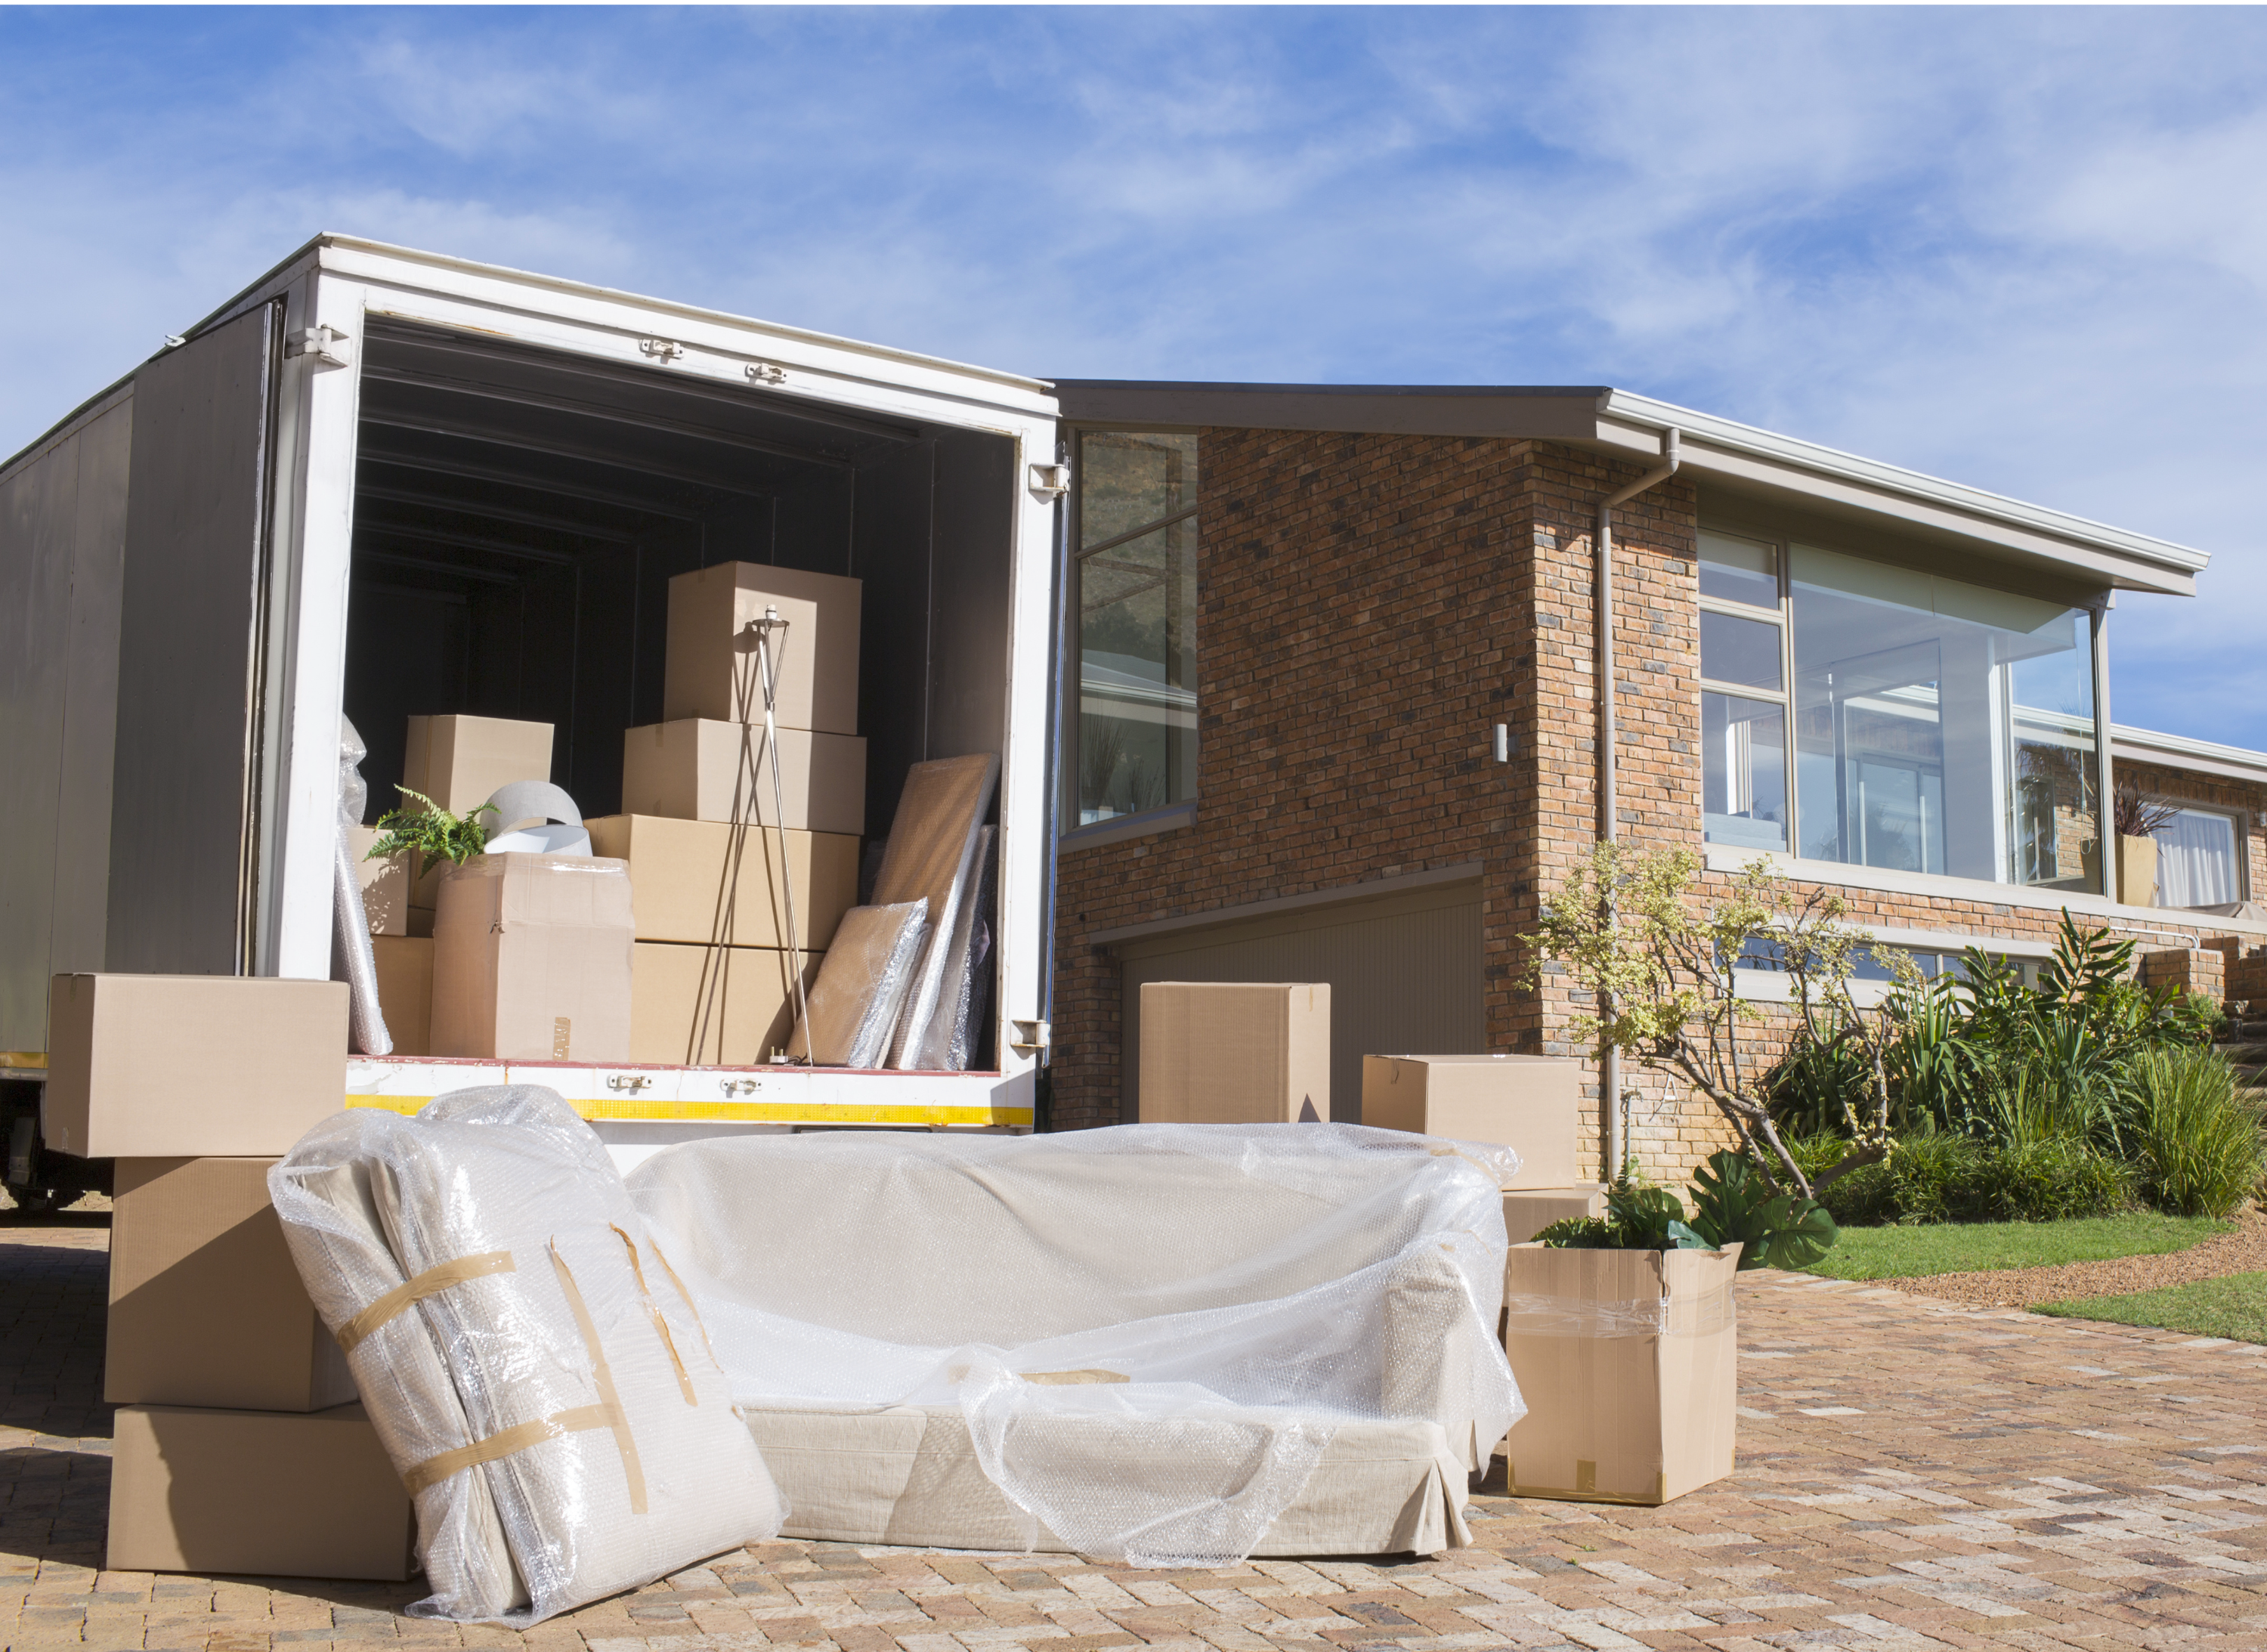 The open back of a moving truck in the driveway of a home with several brown cardboard boxes inside with bubble-wrapped furniture.